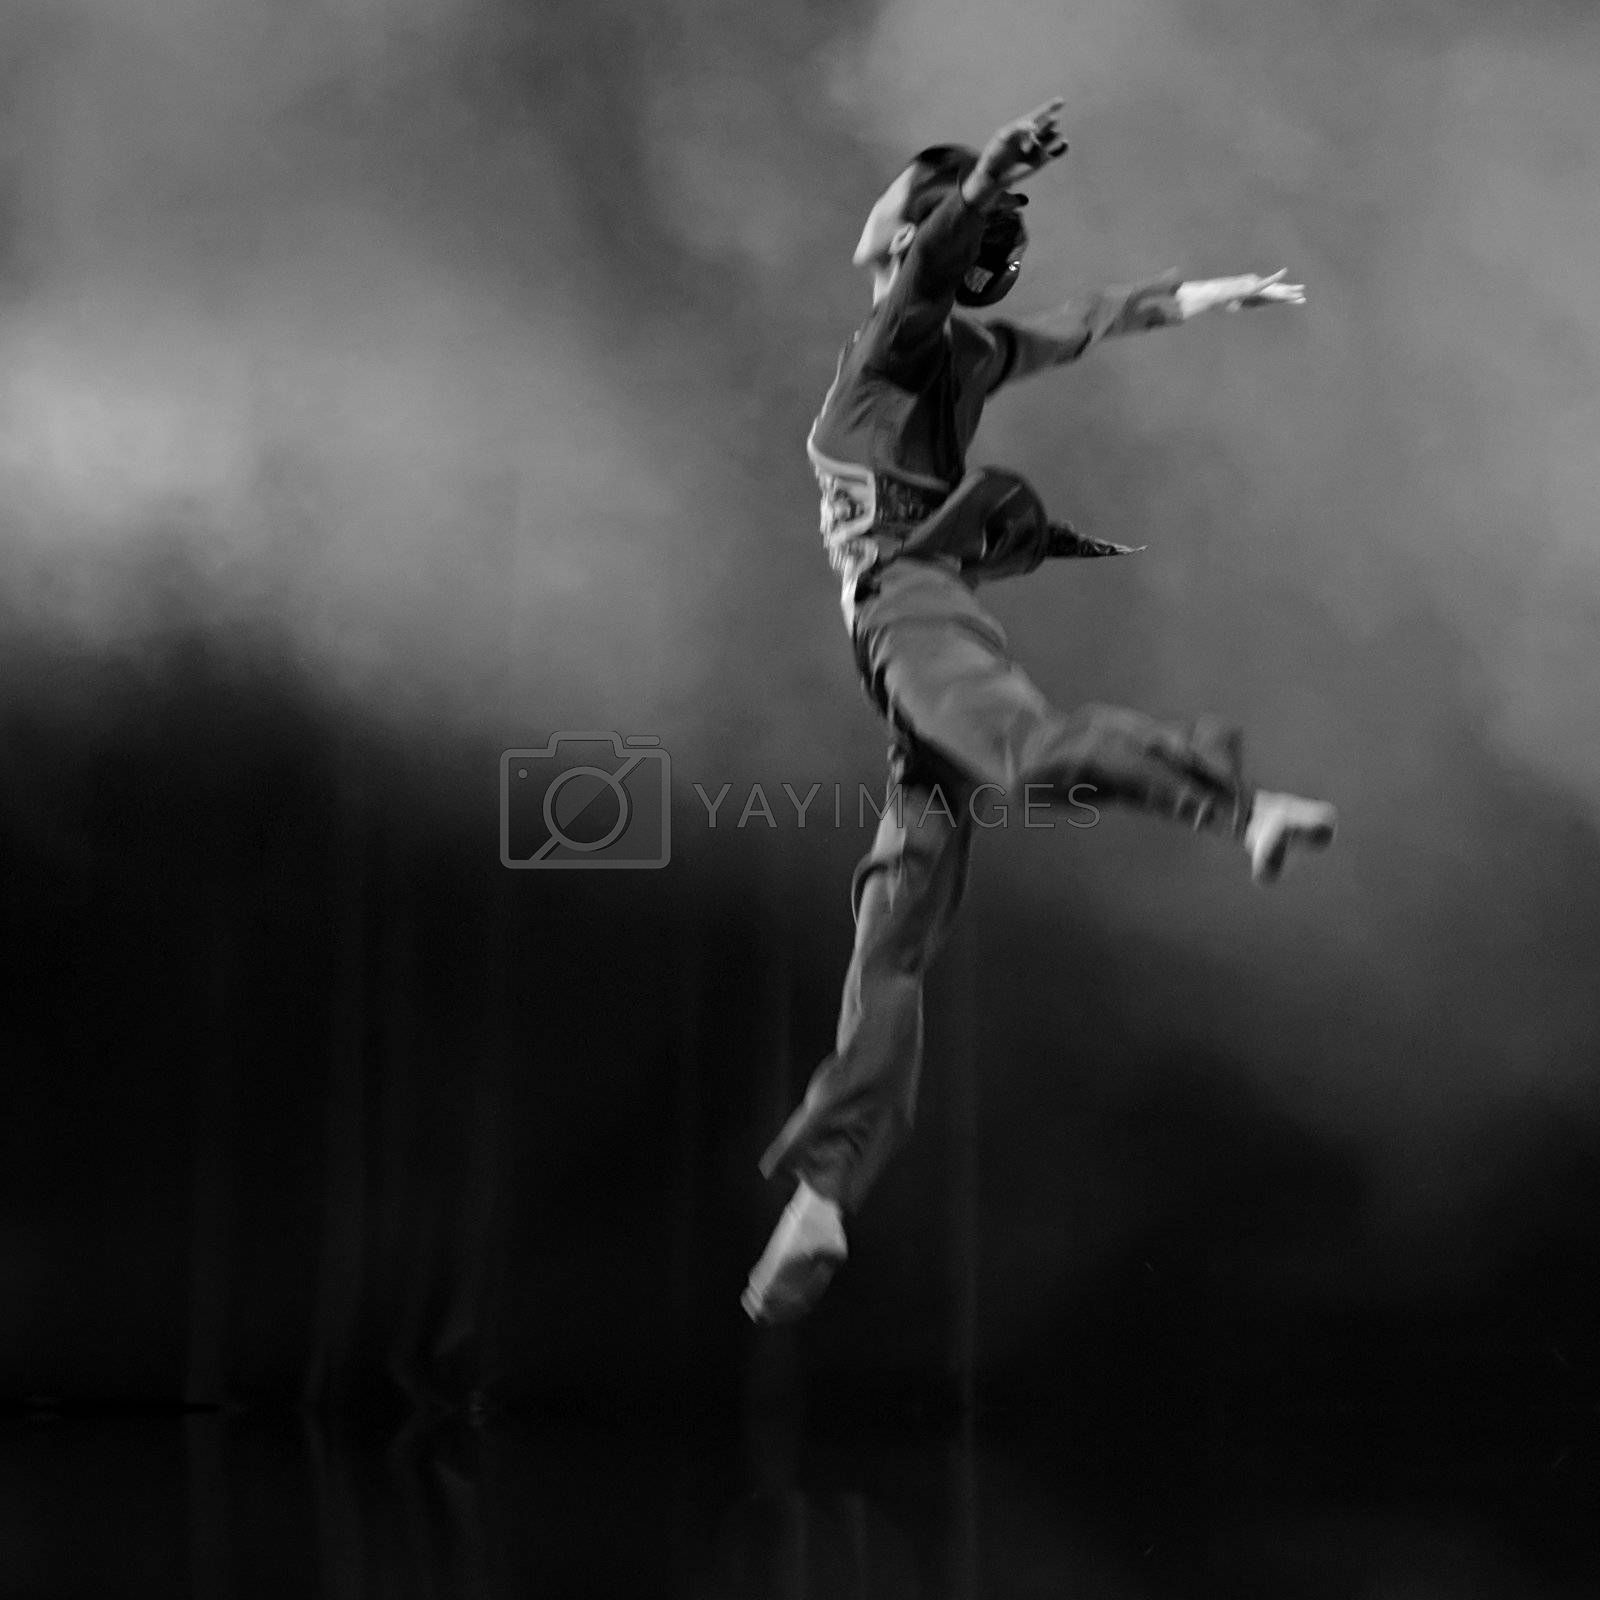 CHENGDU - DEC 16: Chinese dancer performs modern solo dance on stage at JINCHENG theater in the 7th national dance competition of china on Dec 16,2007 in Chengdu, China.